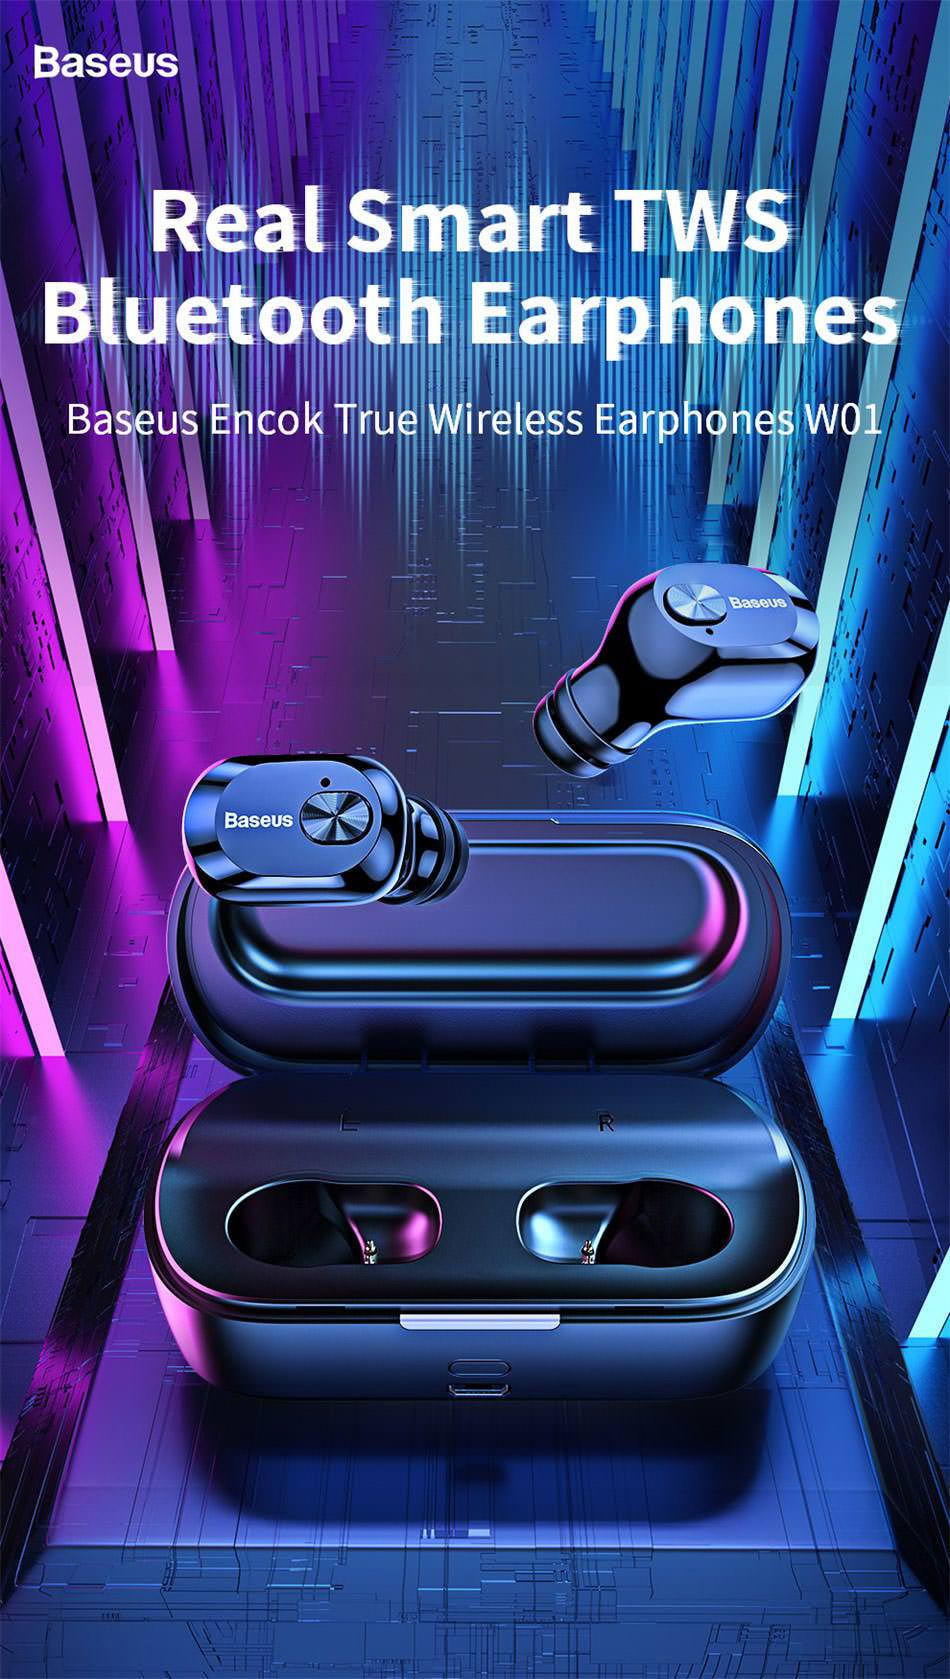 baseus w01 tws earphone